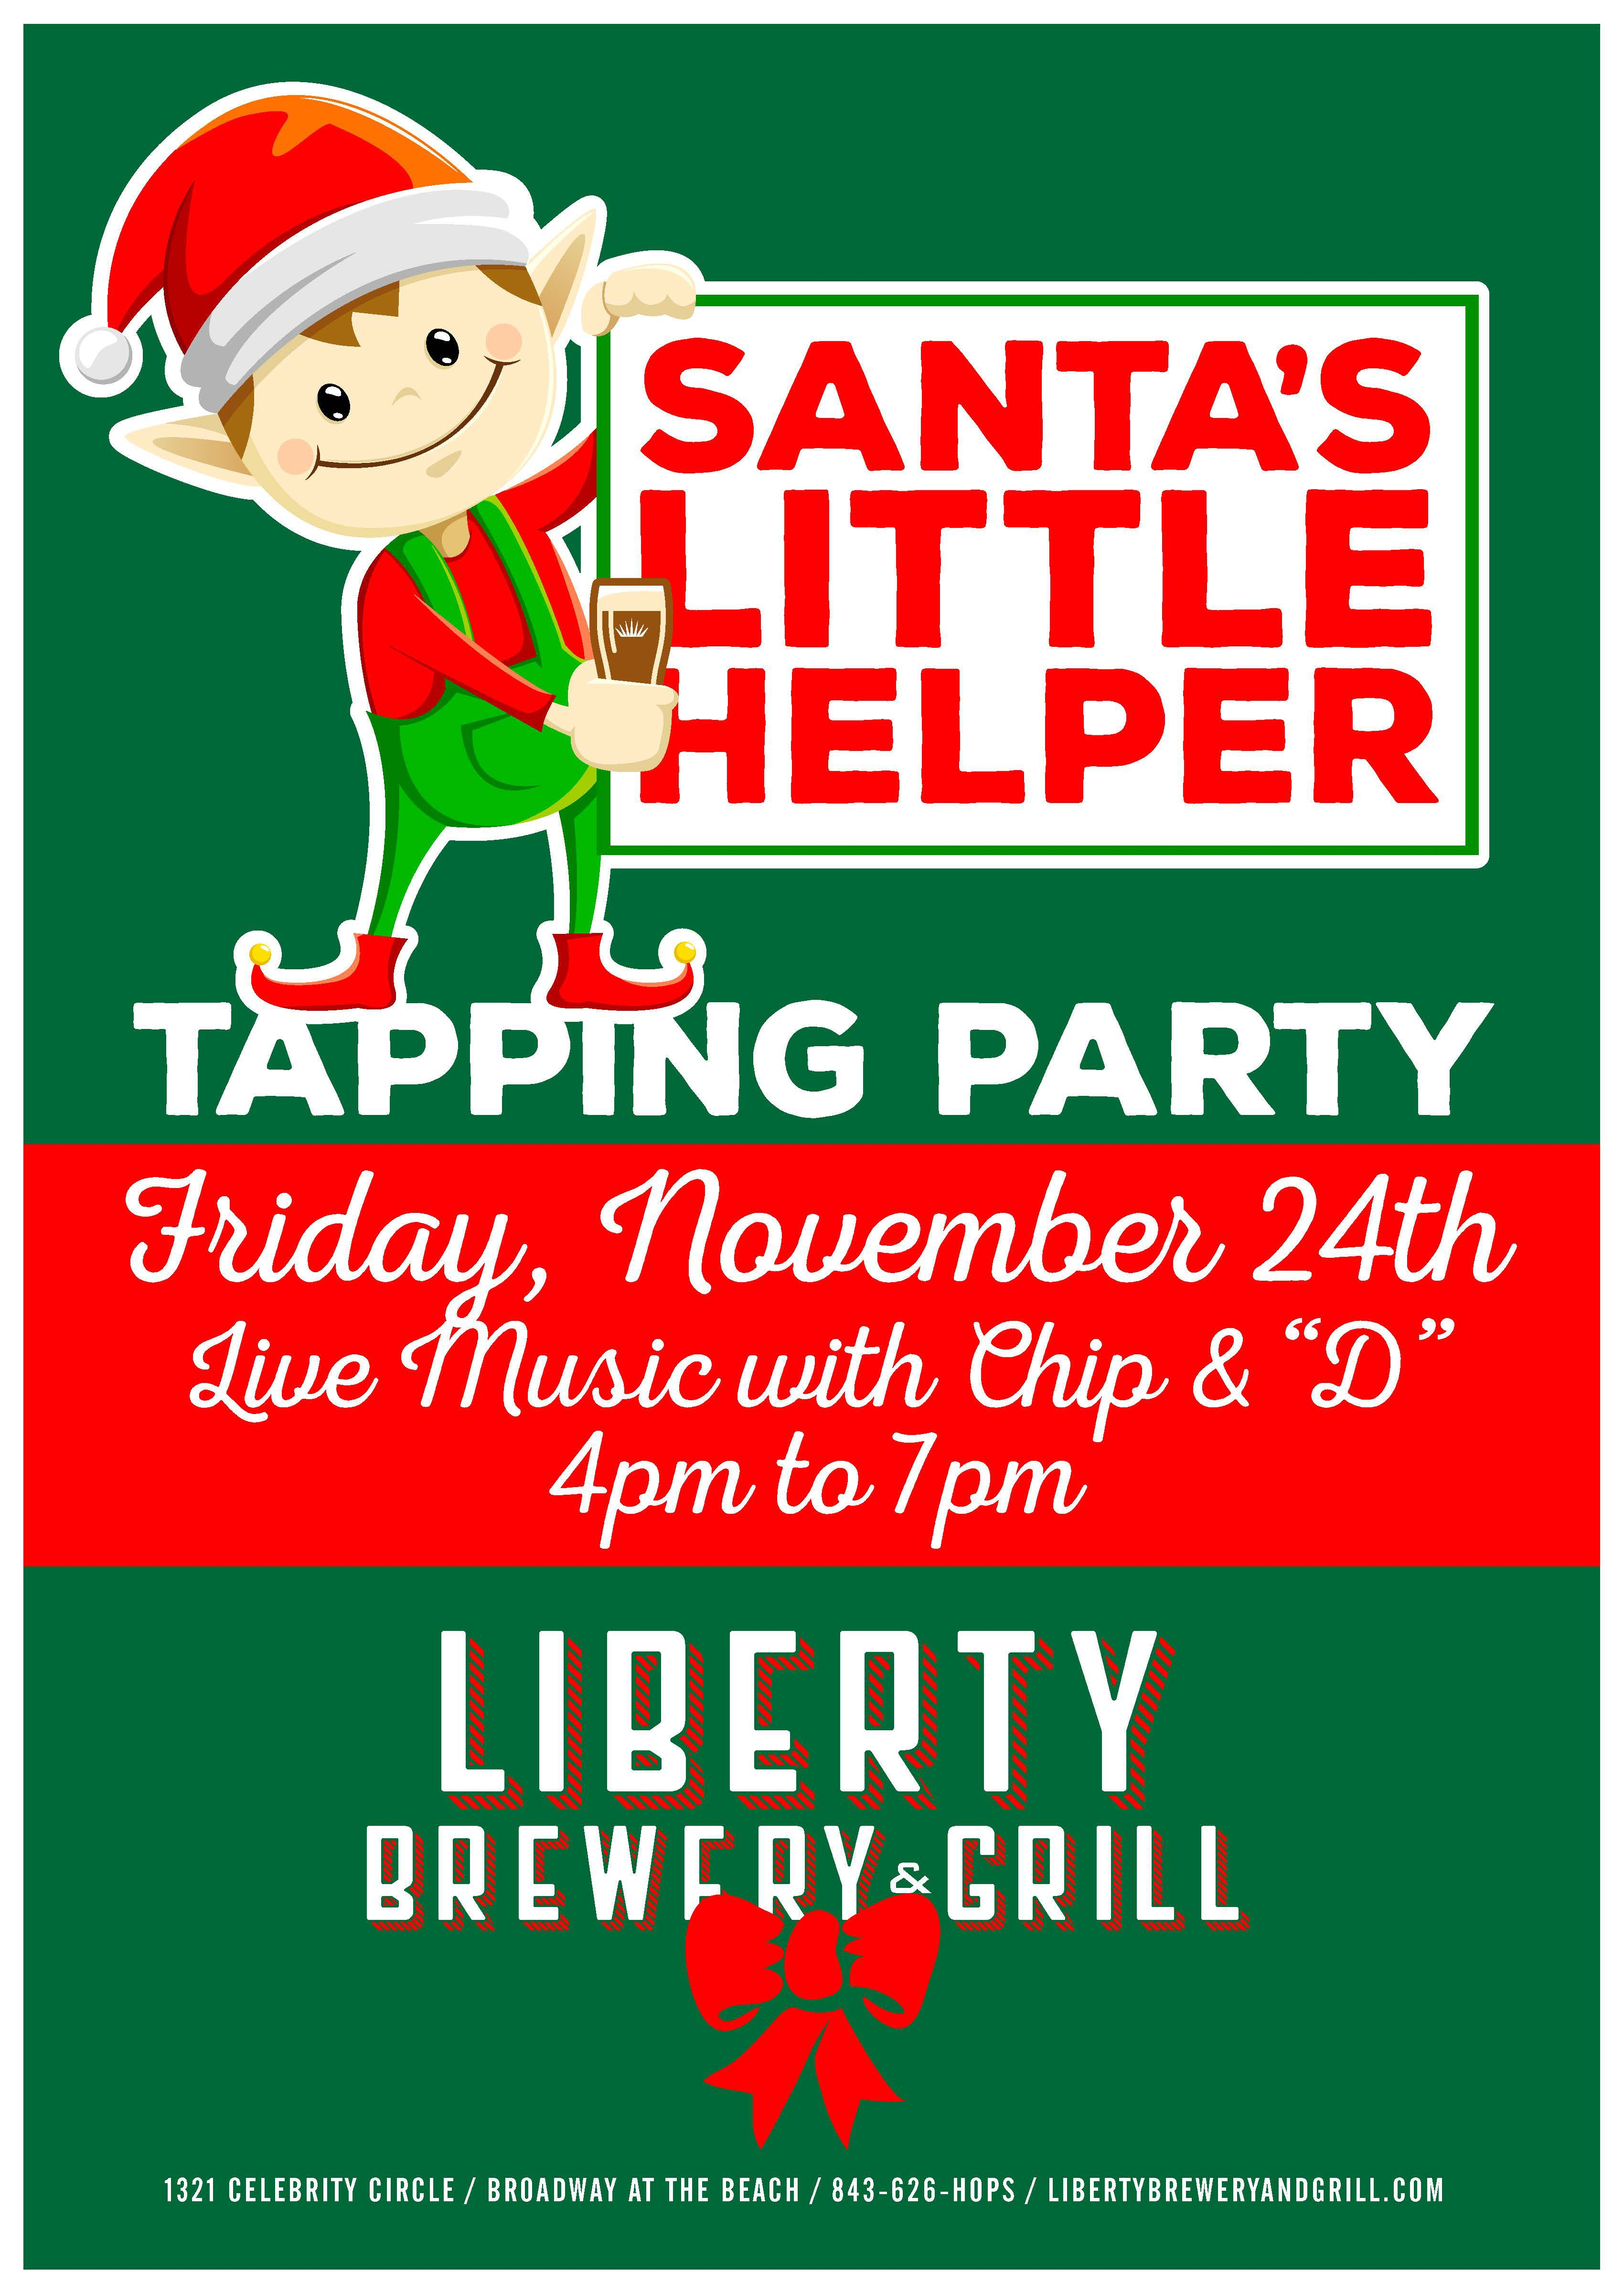 (300) Liberty Brewery santa's little helper tapping party.jpg